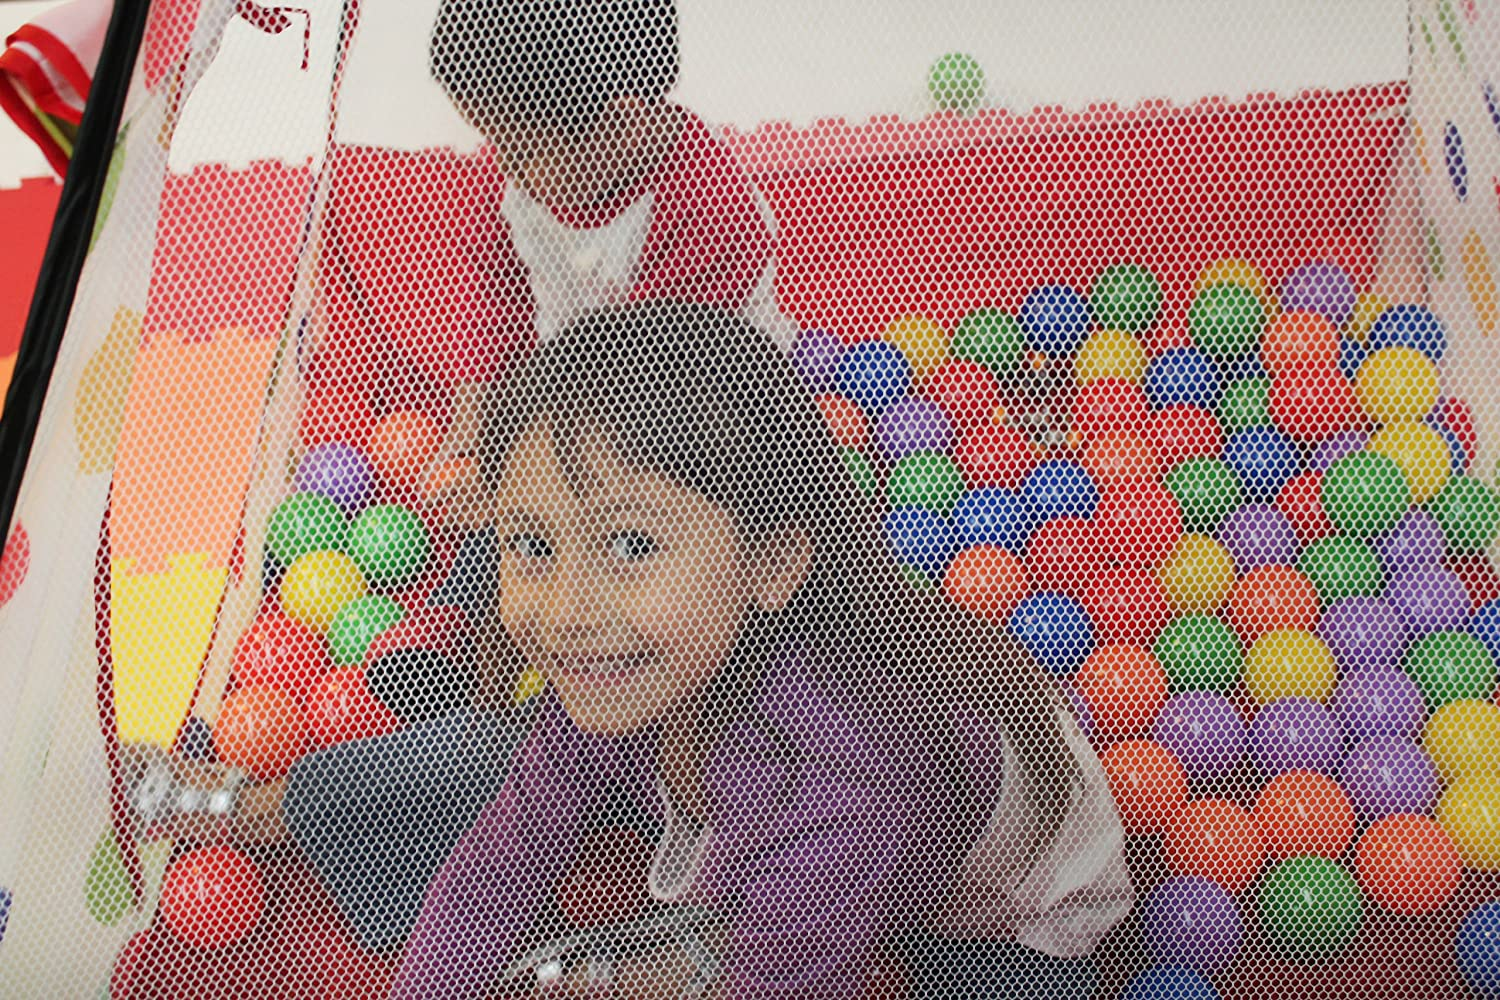 2 Piece CT-432 EWONDERWORLD Polka Dot Teepee Ball Tent House w// Tunnel /& Safety Meshing for Child Play Visibilityl /& Tote